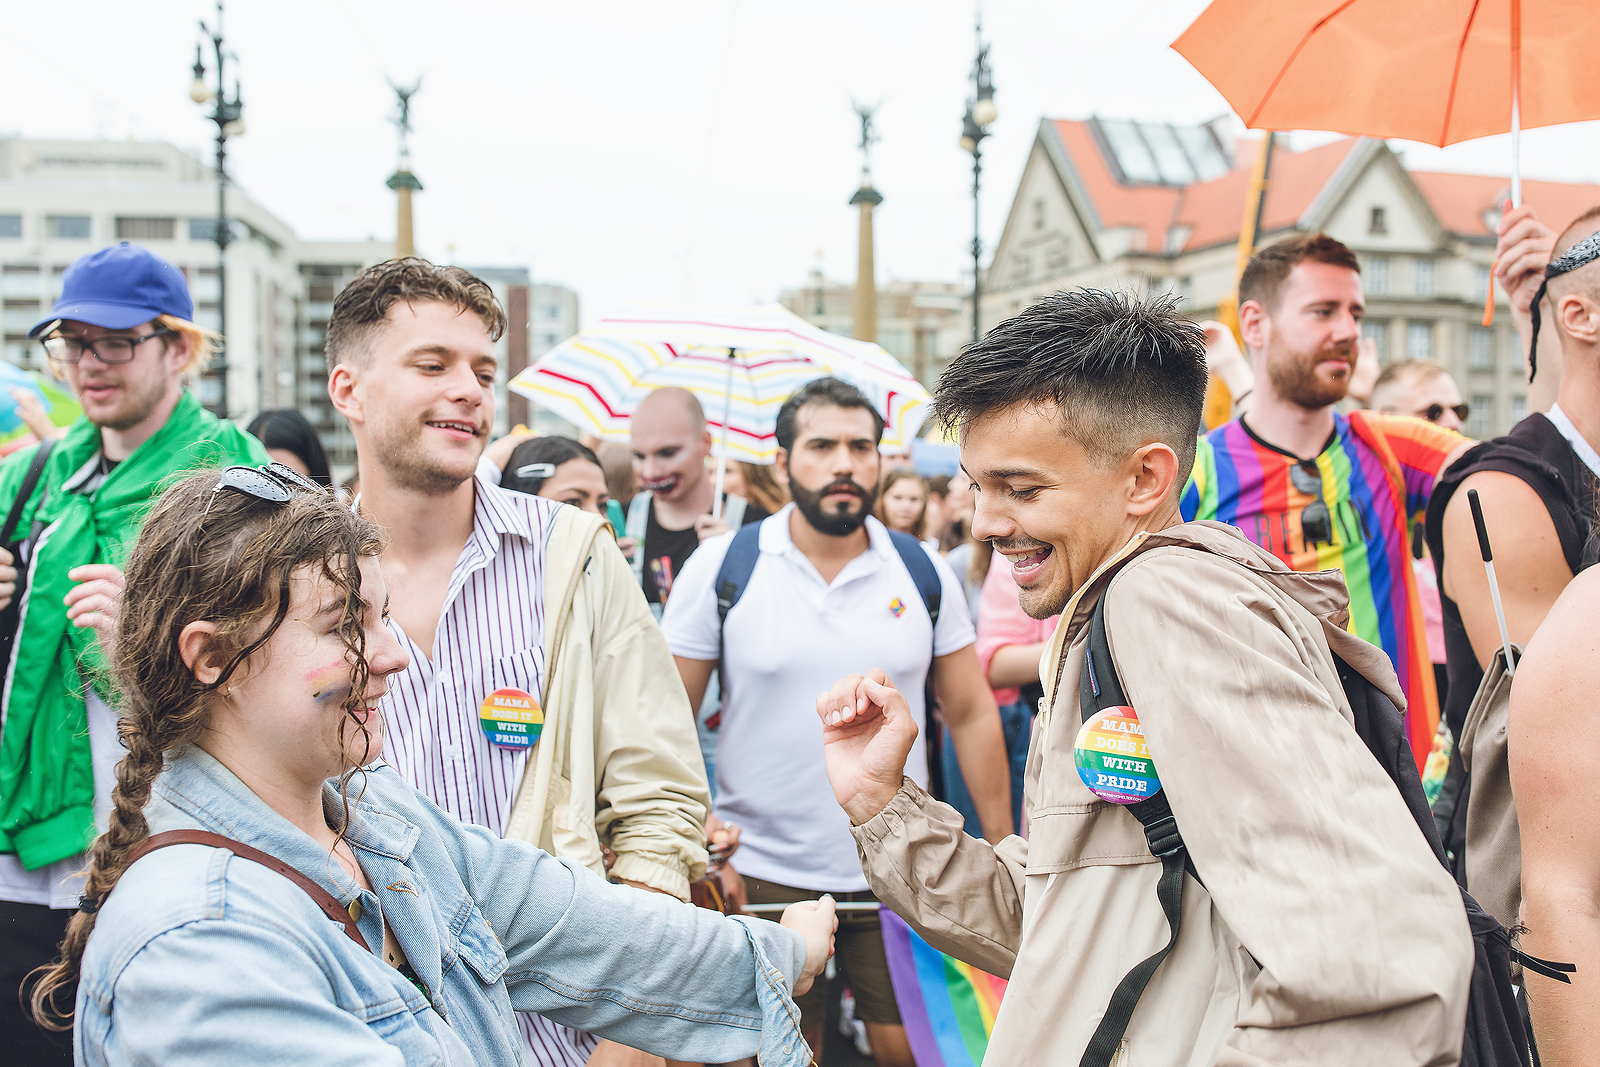 Image of a young man and woman with pride pins on their clothes, dancing in the street while others are walking around them with pride pins as well.